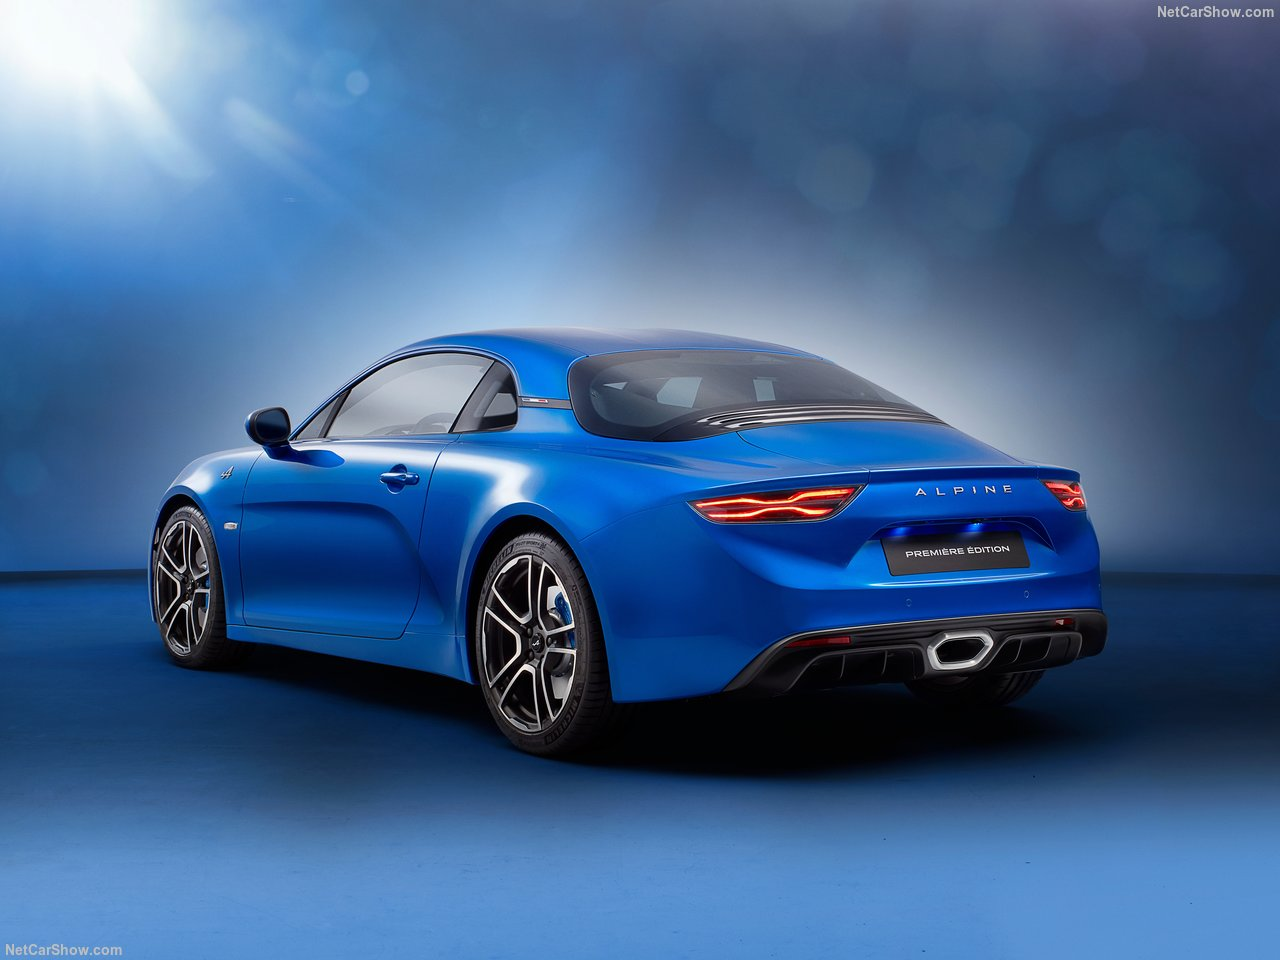 2018 Alpine A110 Price, Specs, Design, Interior, Exterior